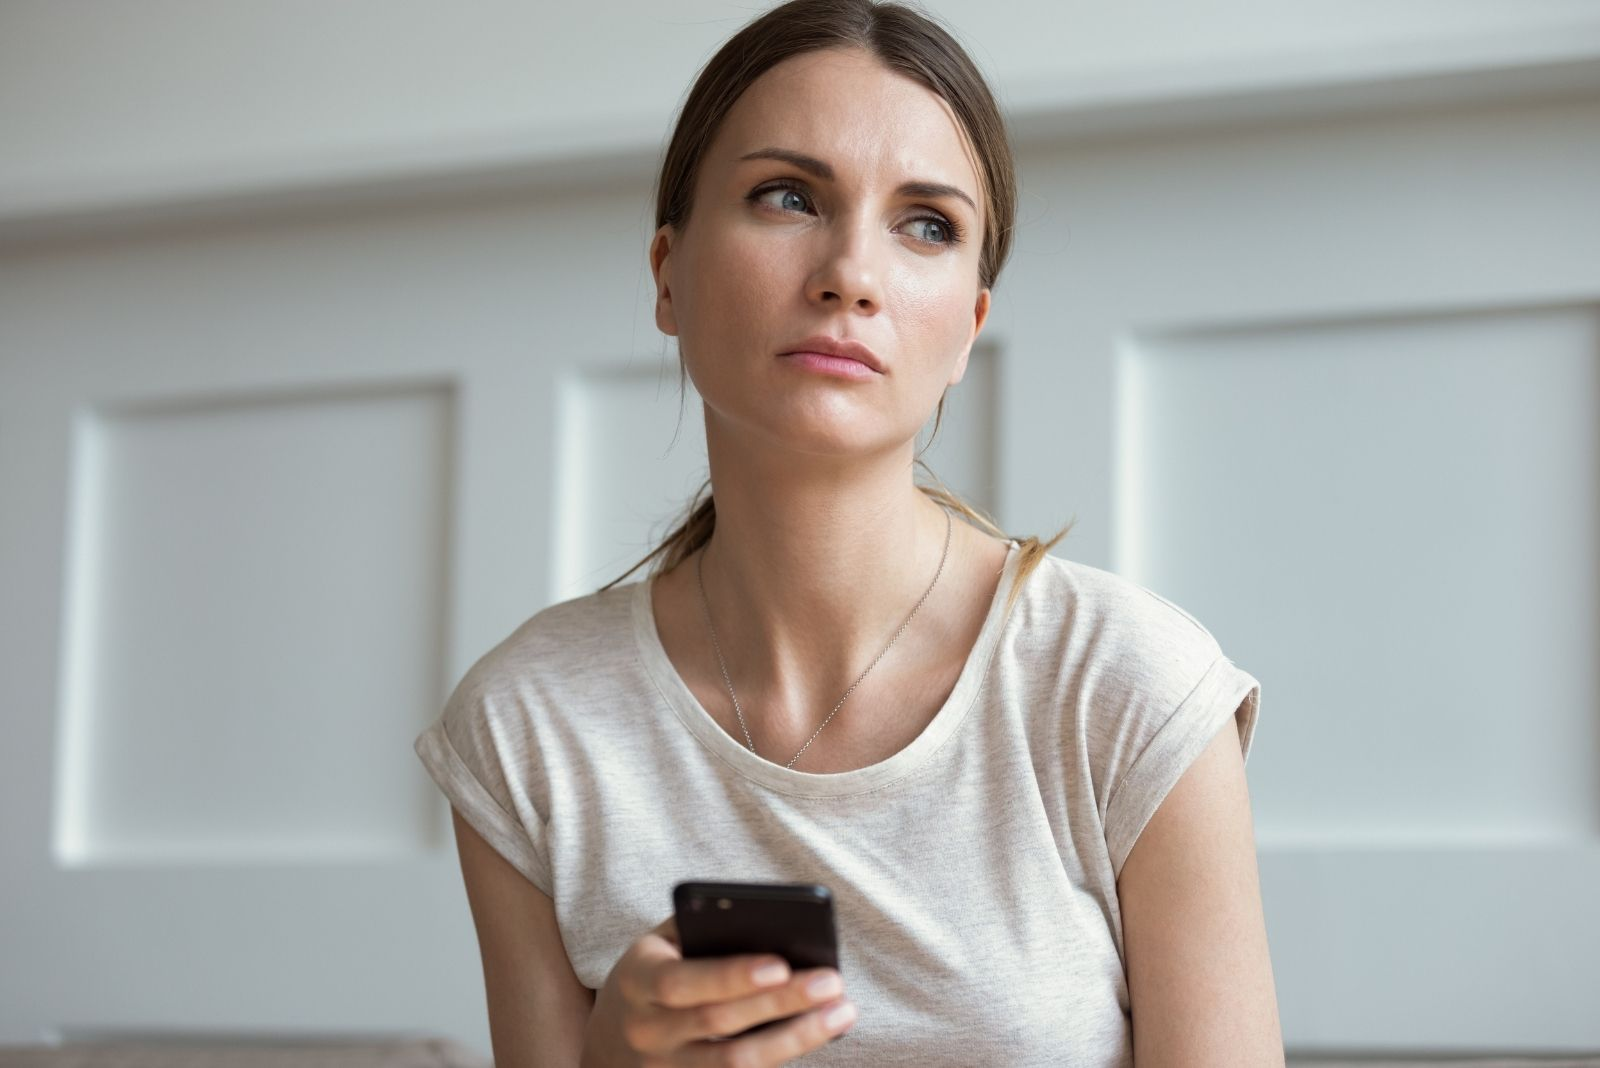 pensive woman texting on smartphone inside home